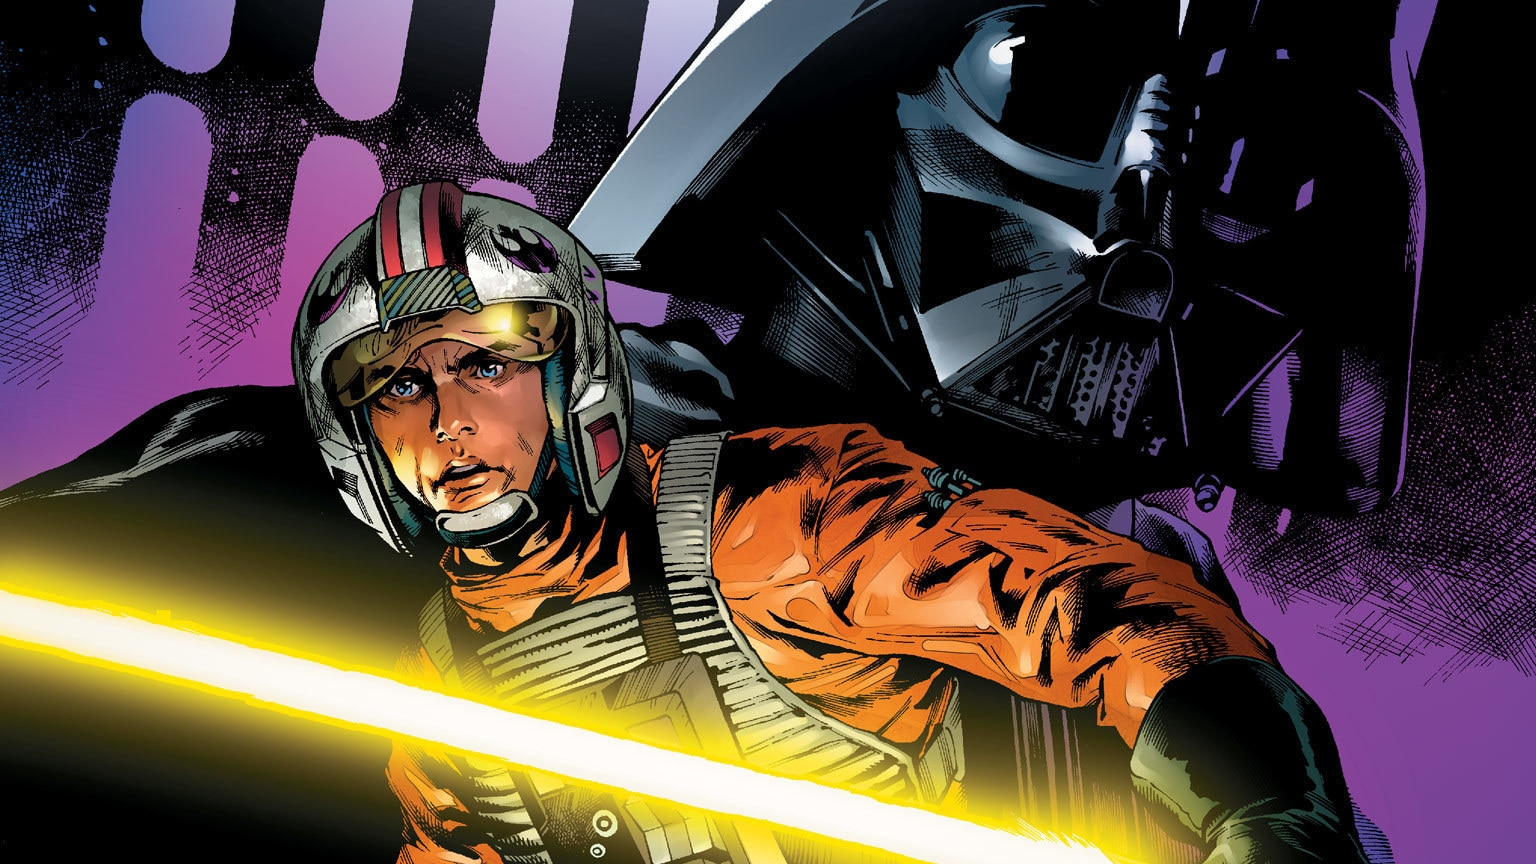 The War of the Bounty Hunters Continues in Marvel's August 2021 Star Wars Comics – Exclusive